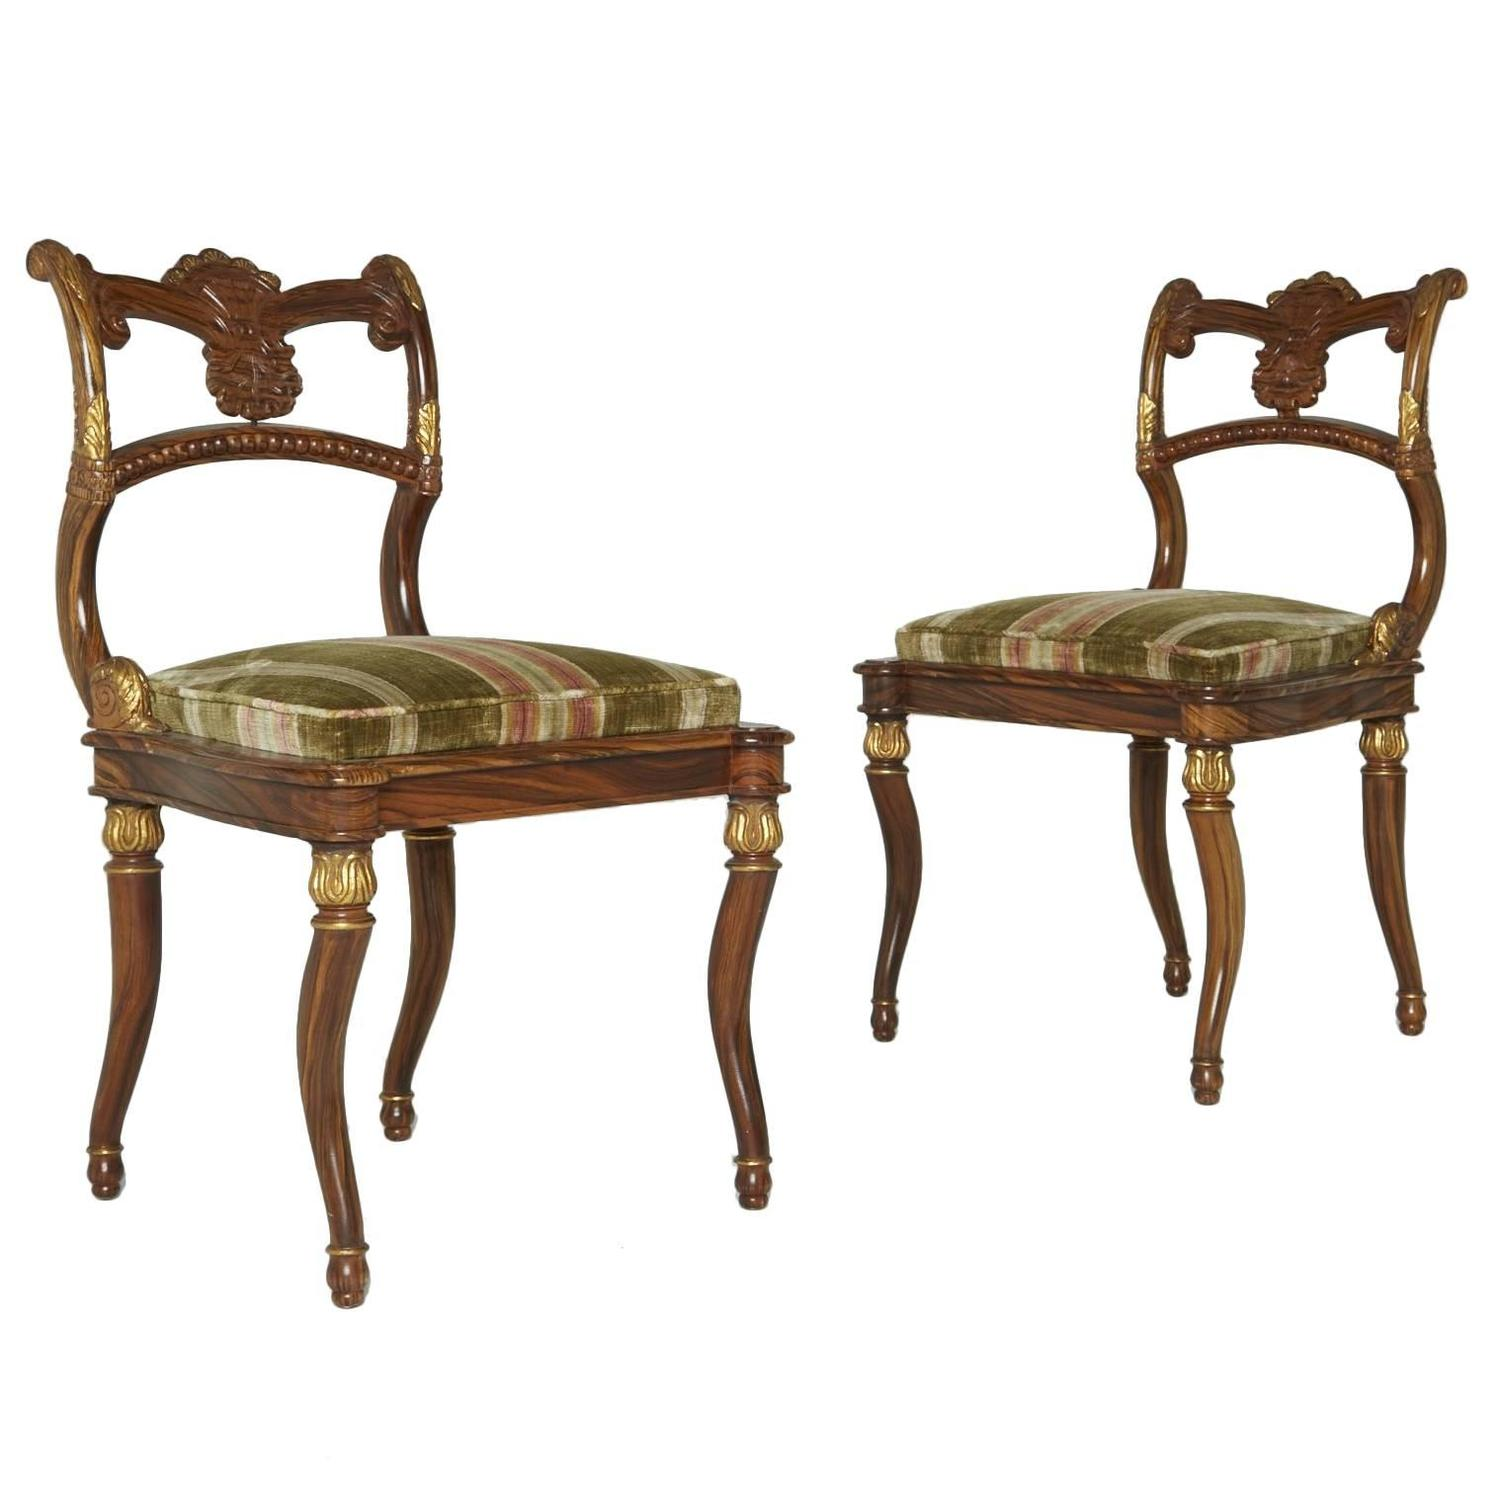 Awesome Pair Neoclassical Gilded French Empire Style Chairs With Green Upholstery